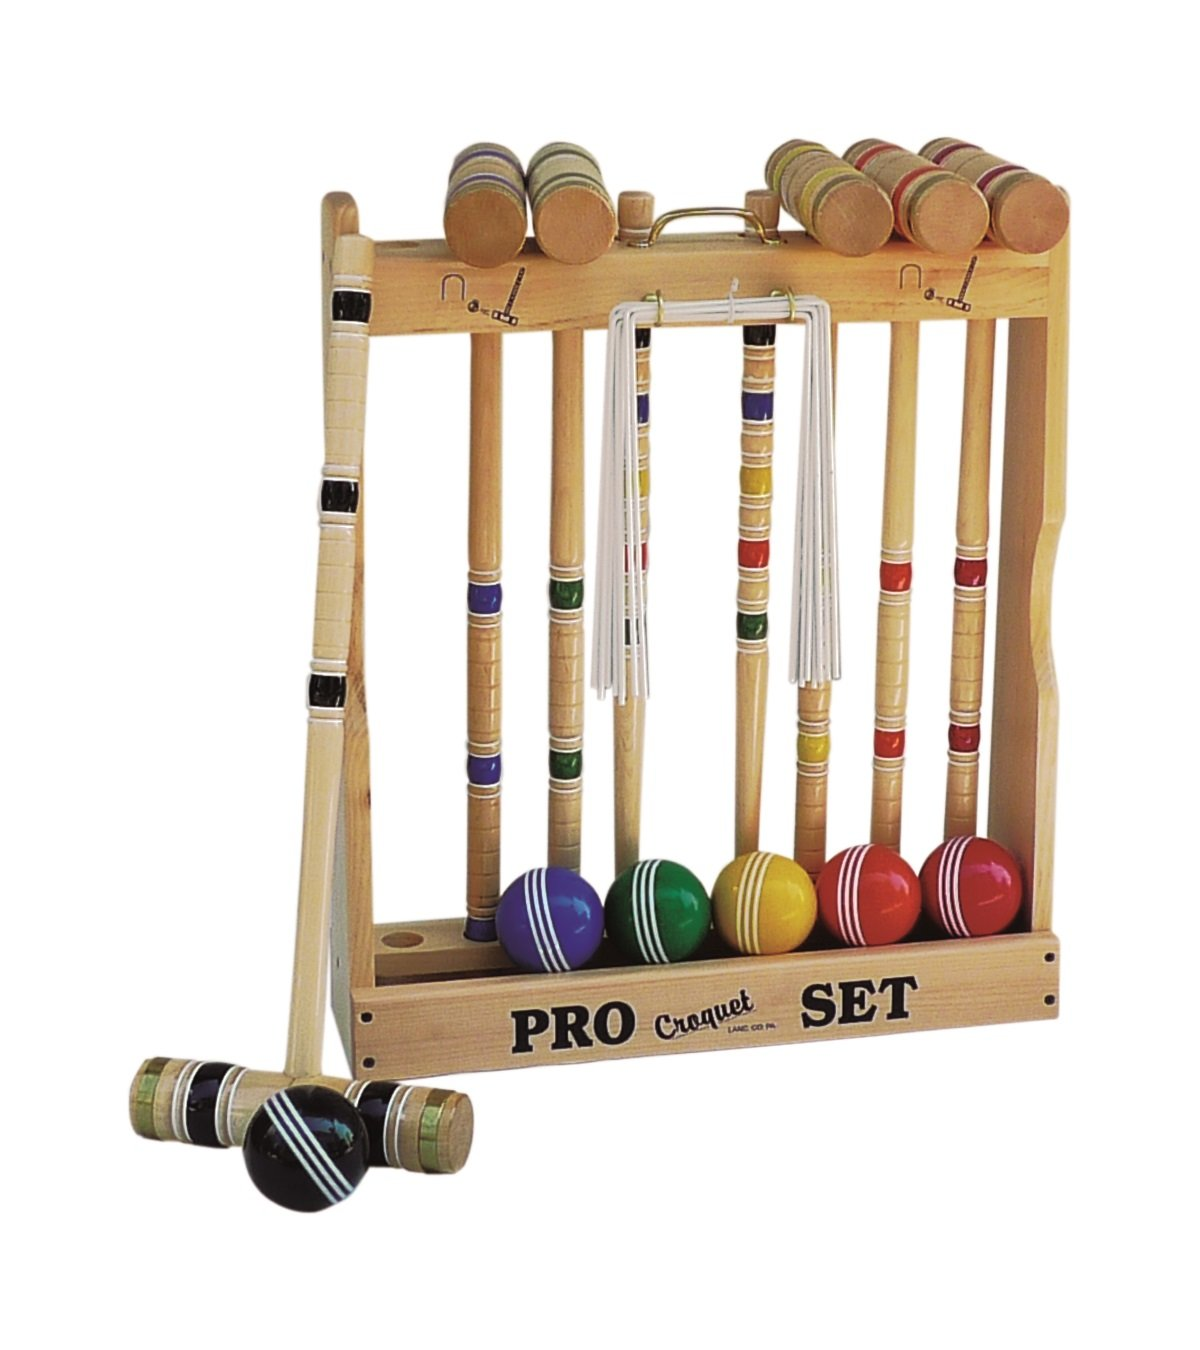 6 Player Croquet Set amish-made in木製ラック24